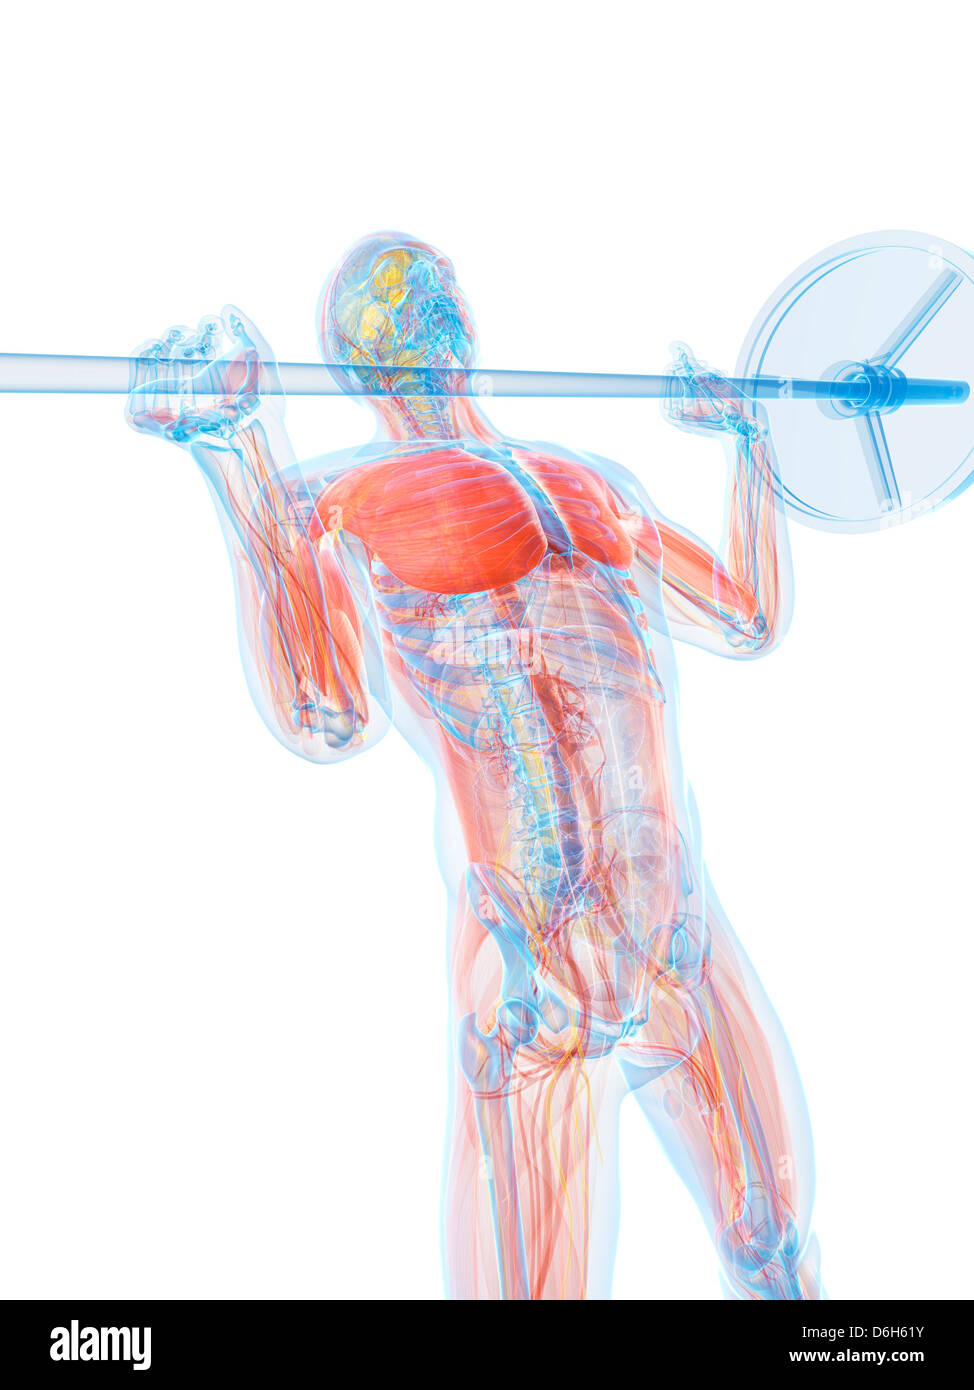 Male Torso Anatomy Stock Photos Images Diagram Artwork Image